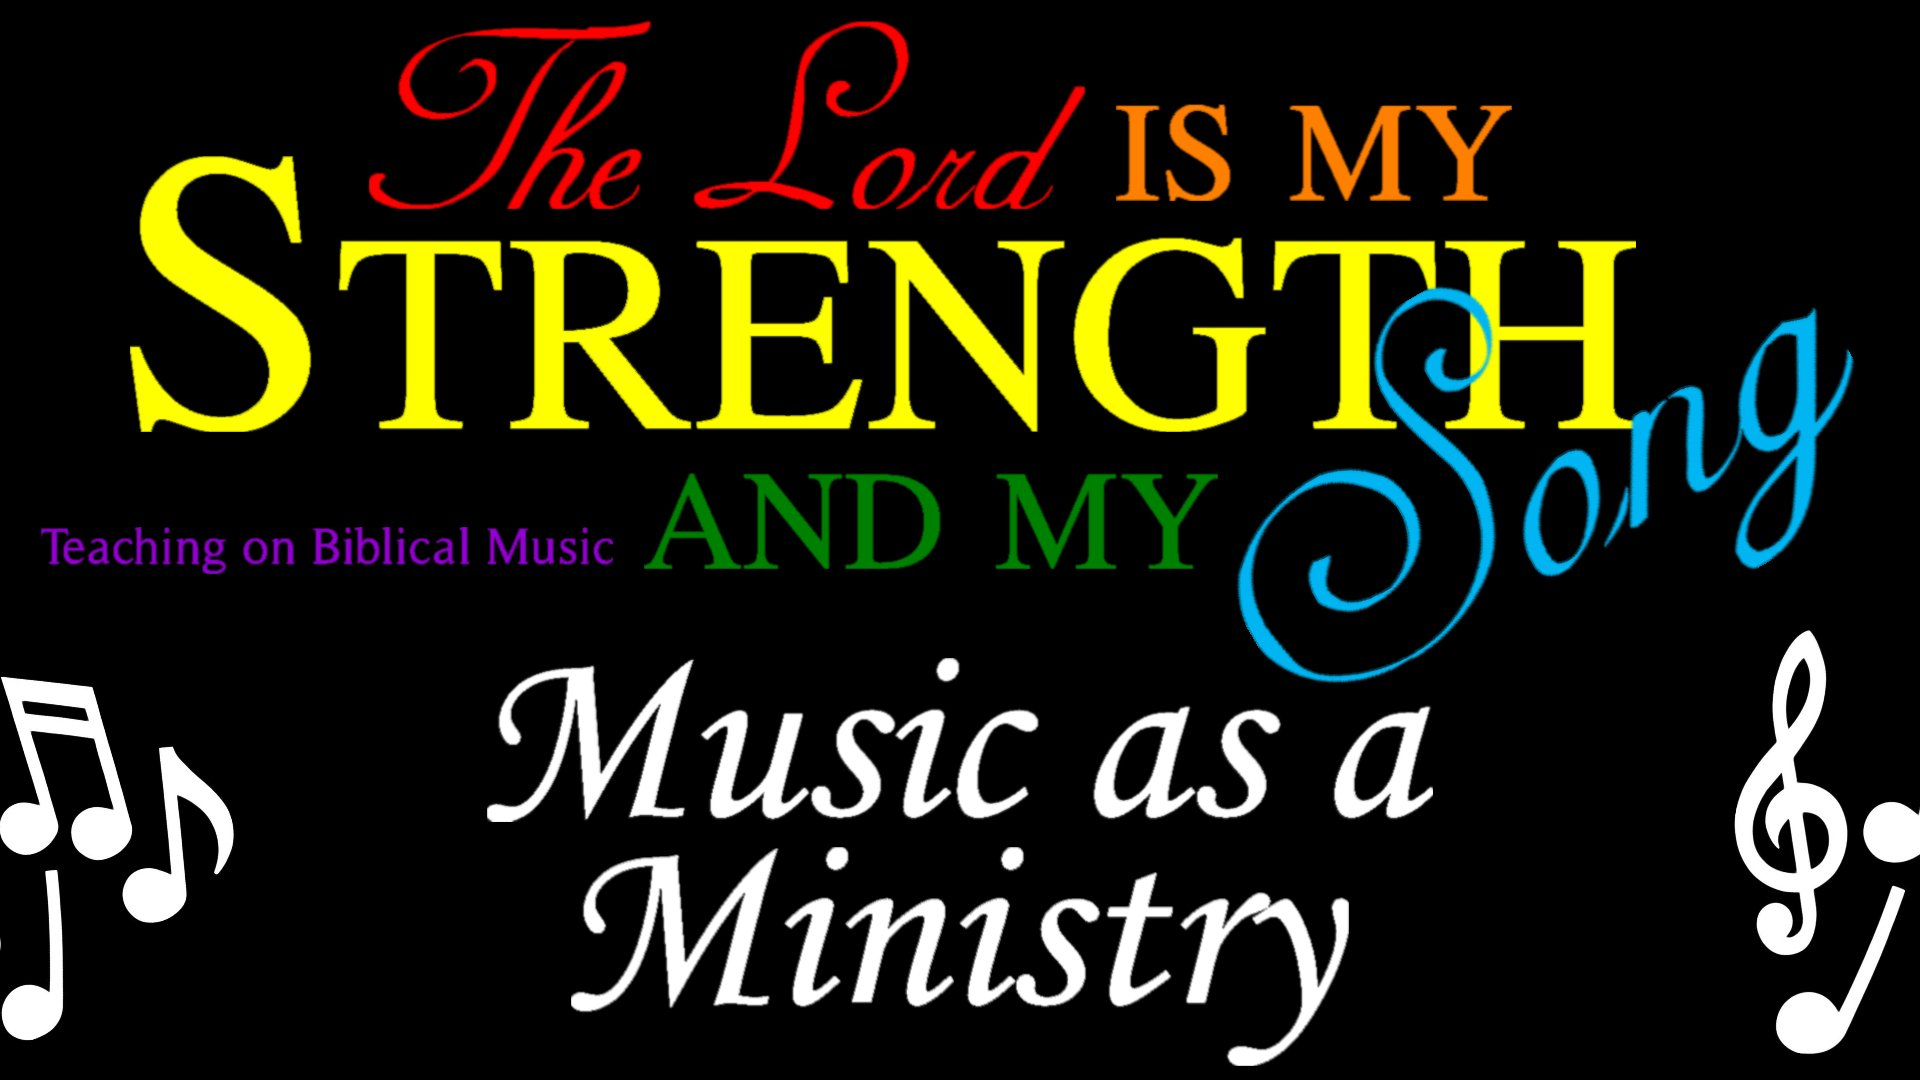 04 Music as a Ministry